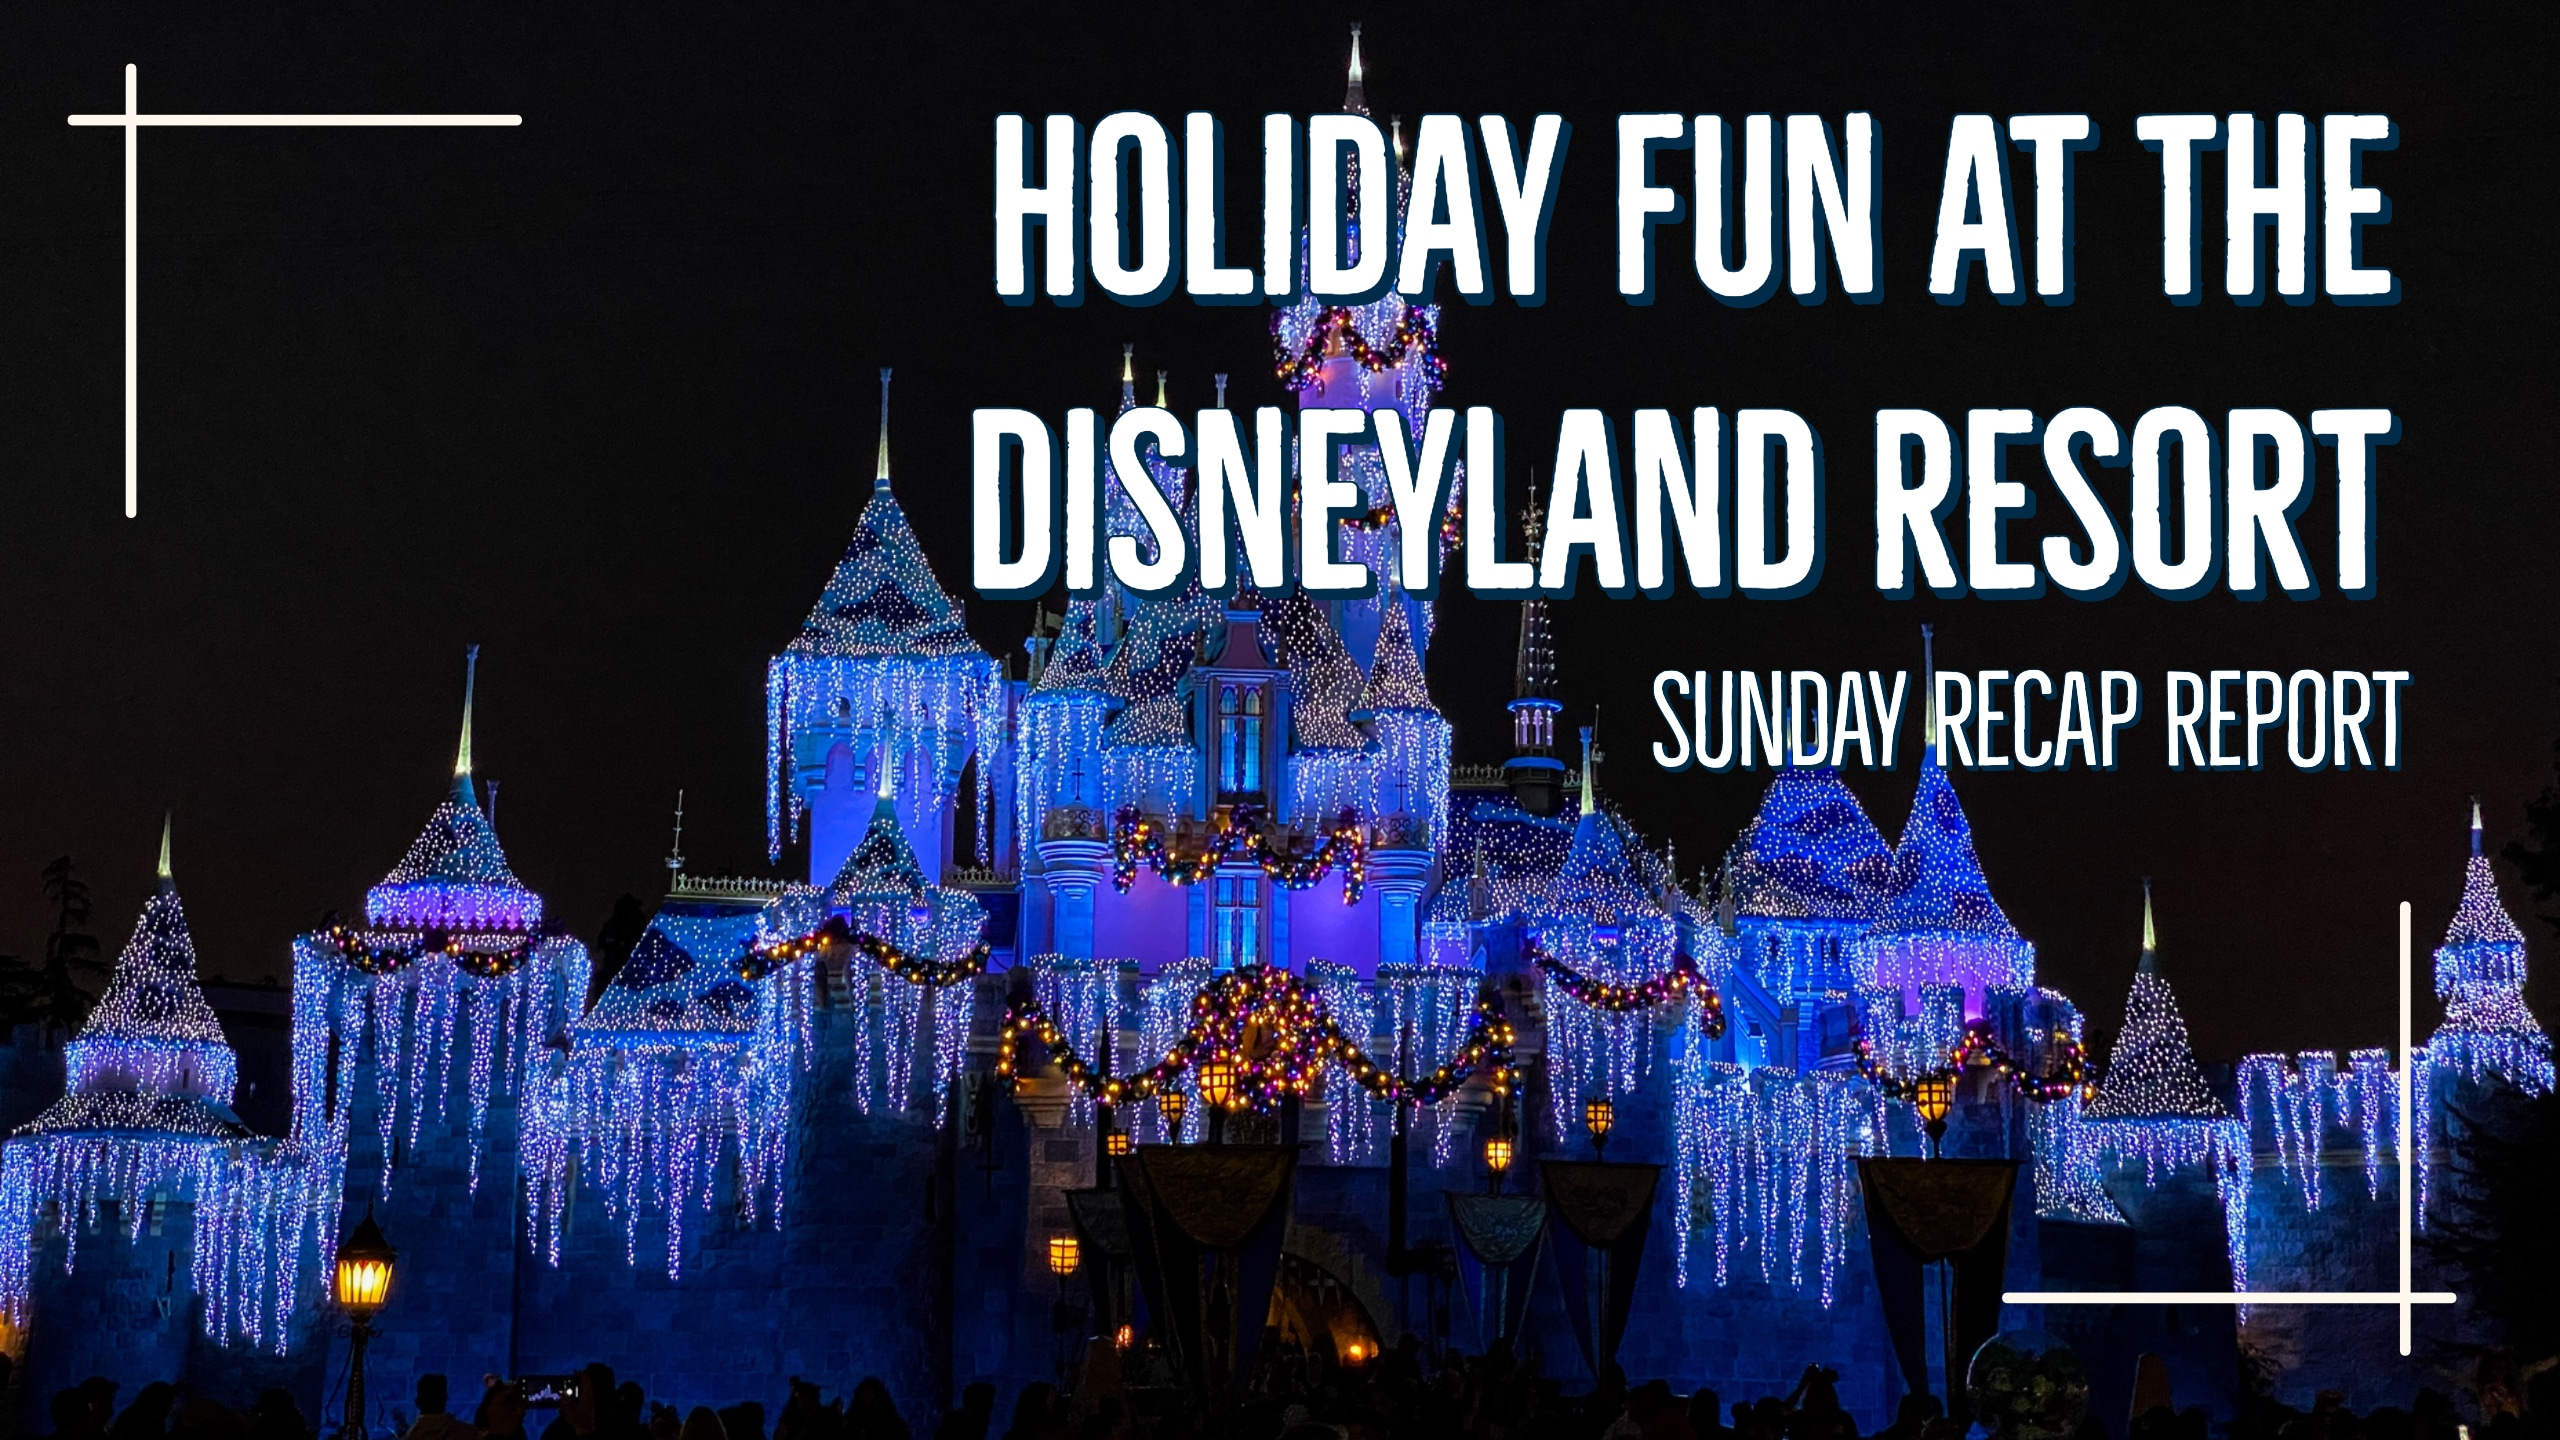 Sunday Recap Report - Holiday Fun at the Disneyland Resort